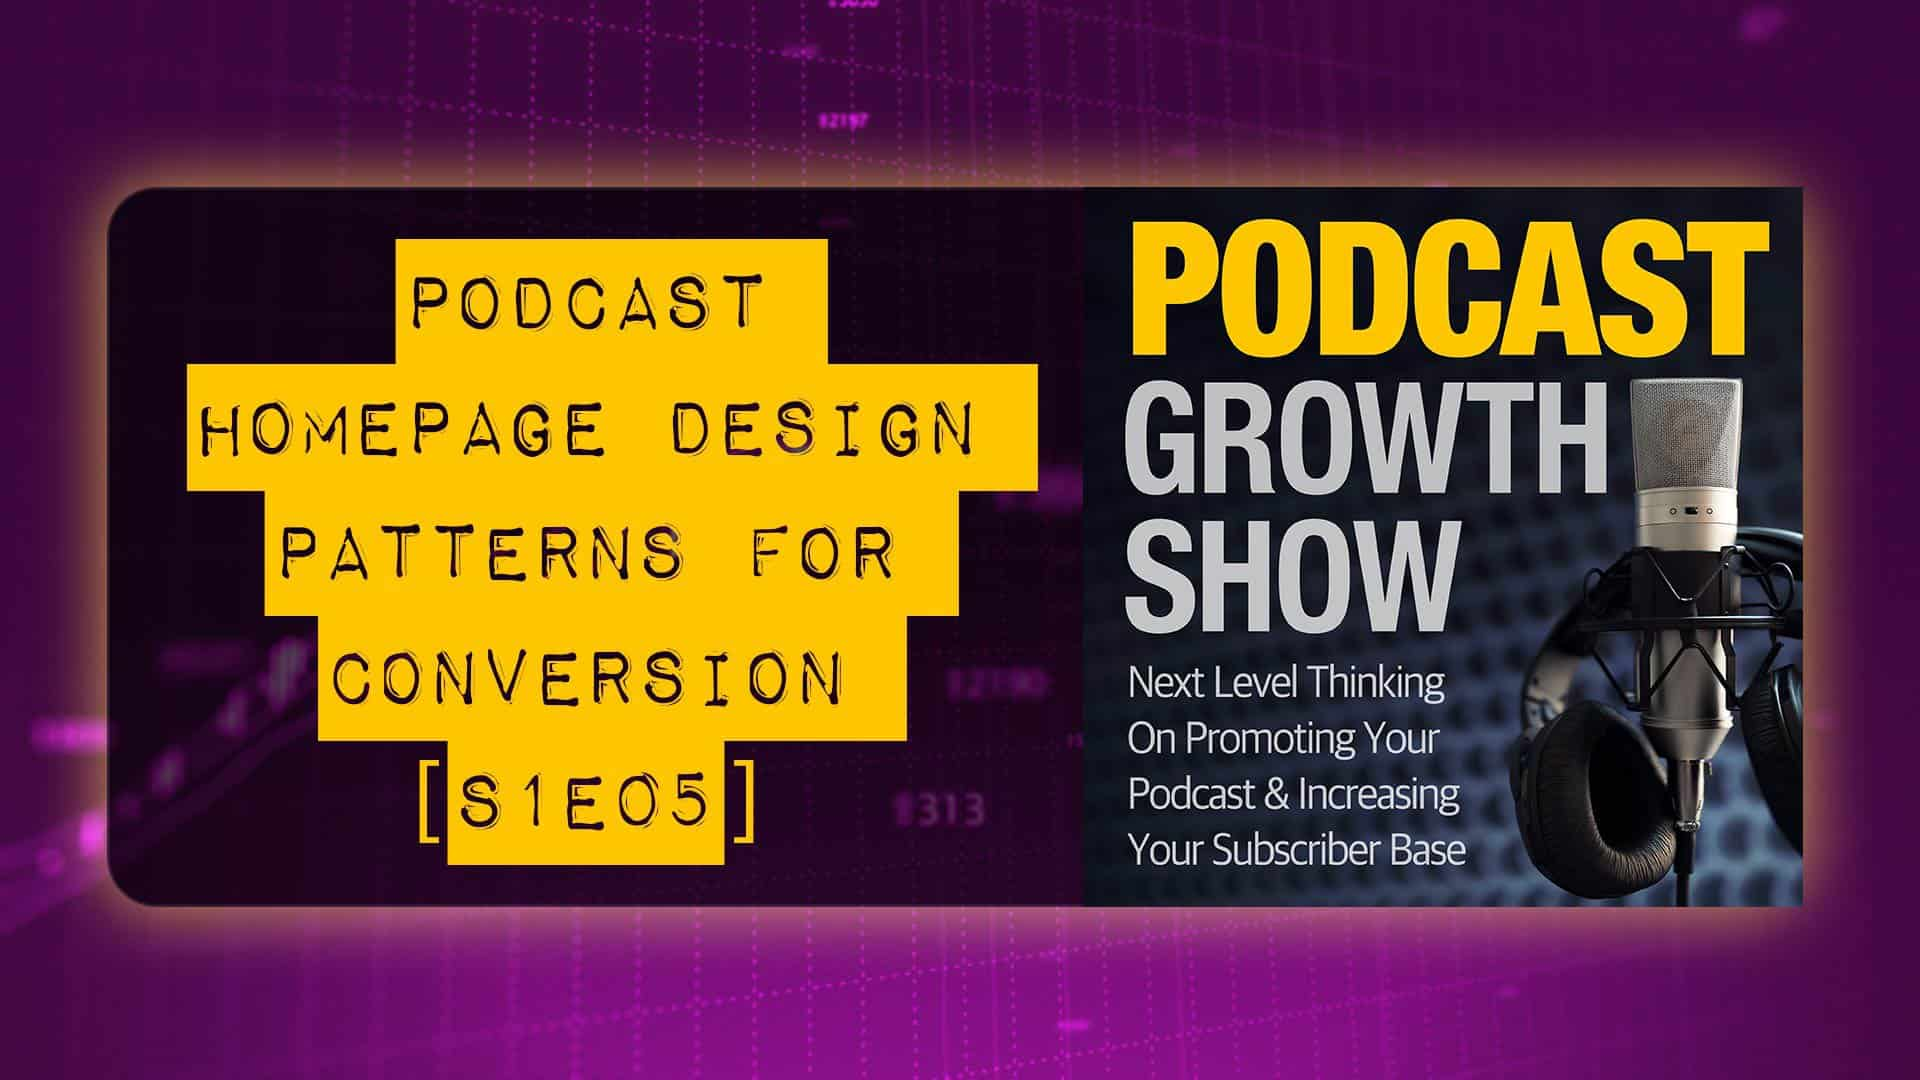 Podcast Homepage Design Patterns For Conversion And List Building